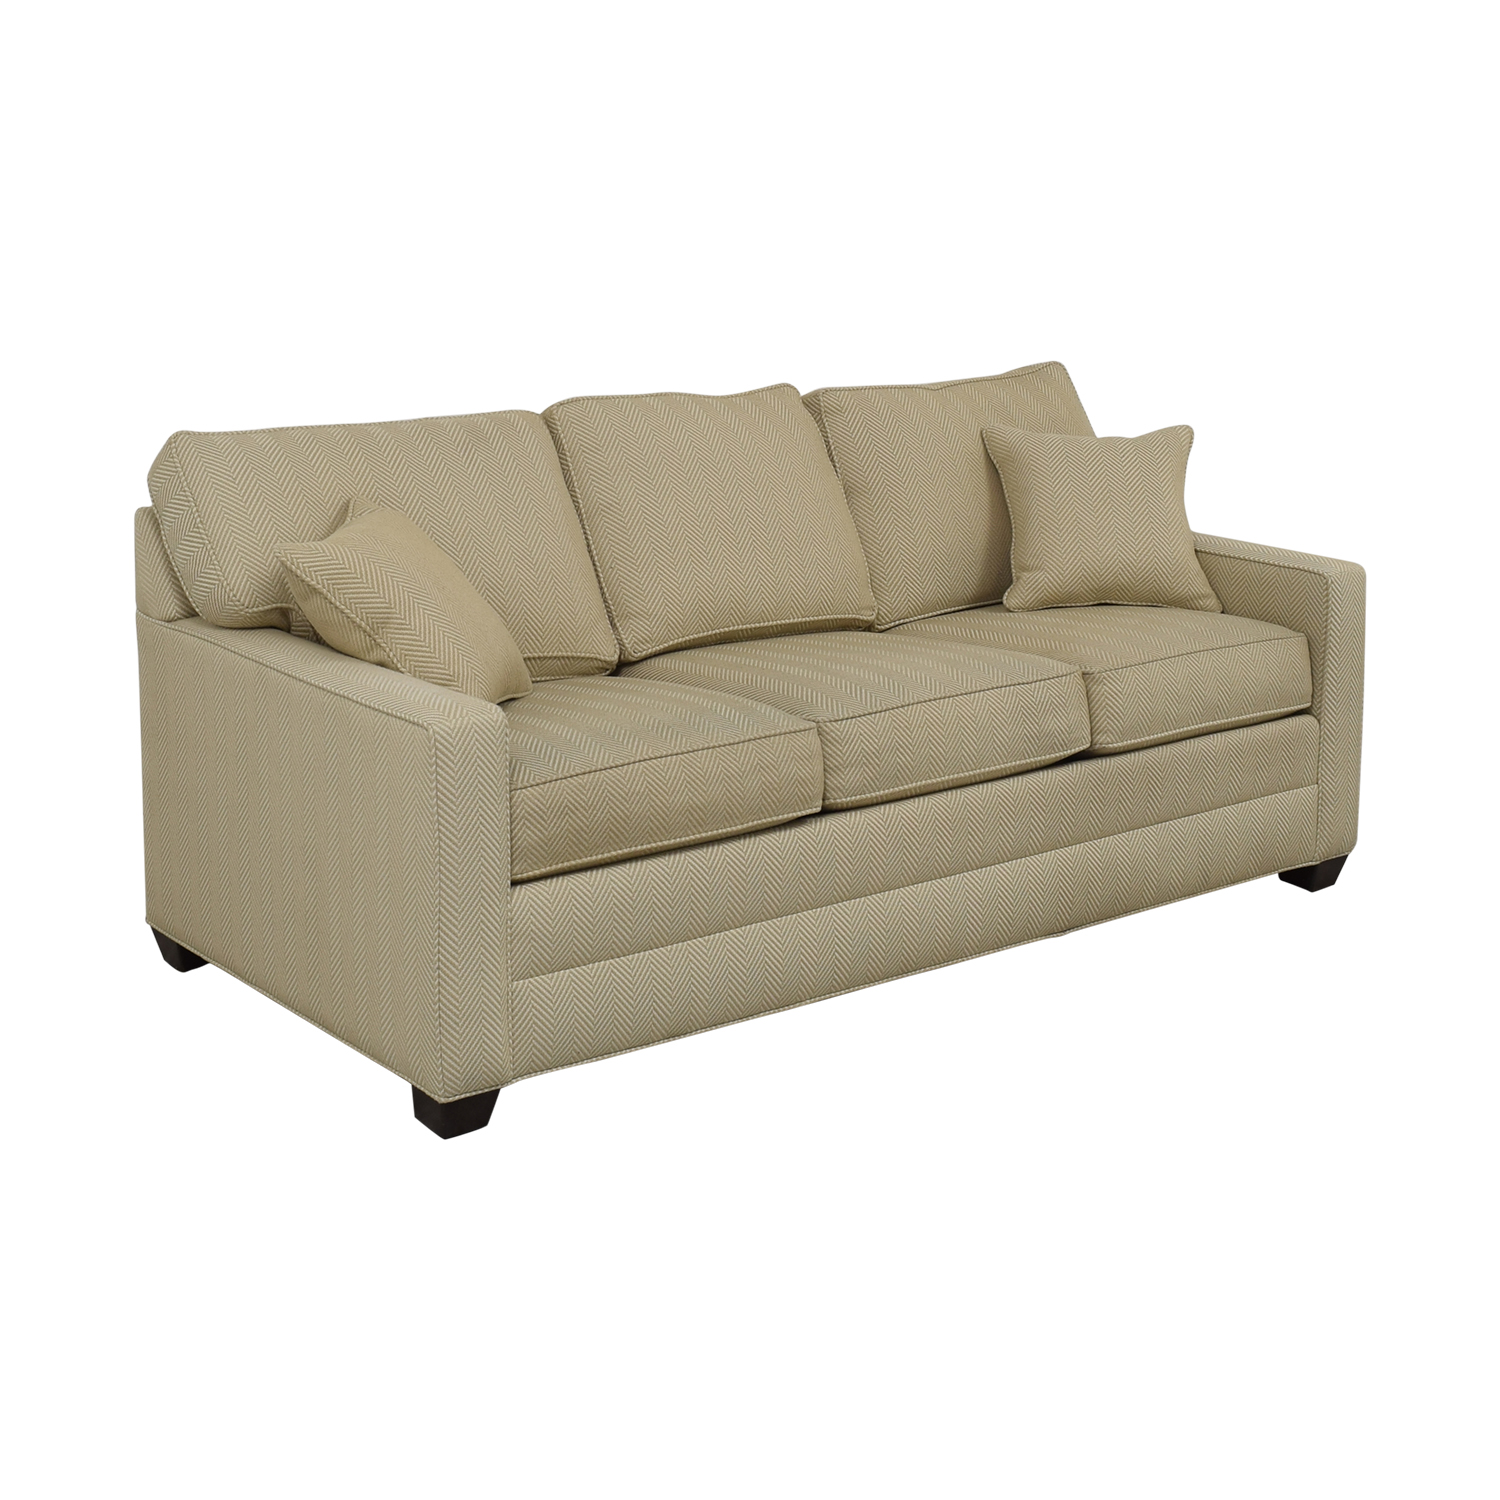 Ethan Allen Ethan Allen Beige Three-Cushion Couch coupon